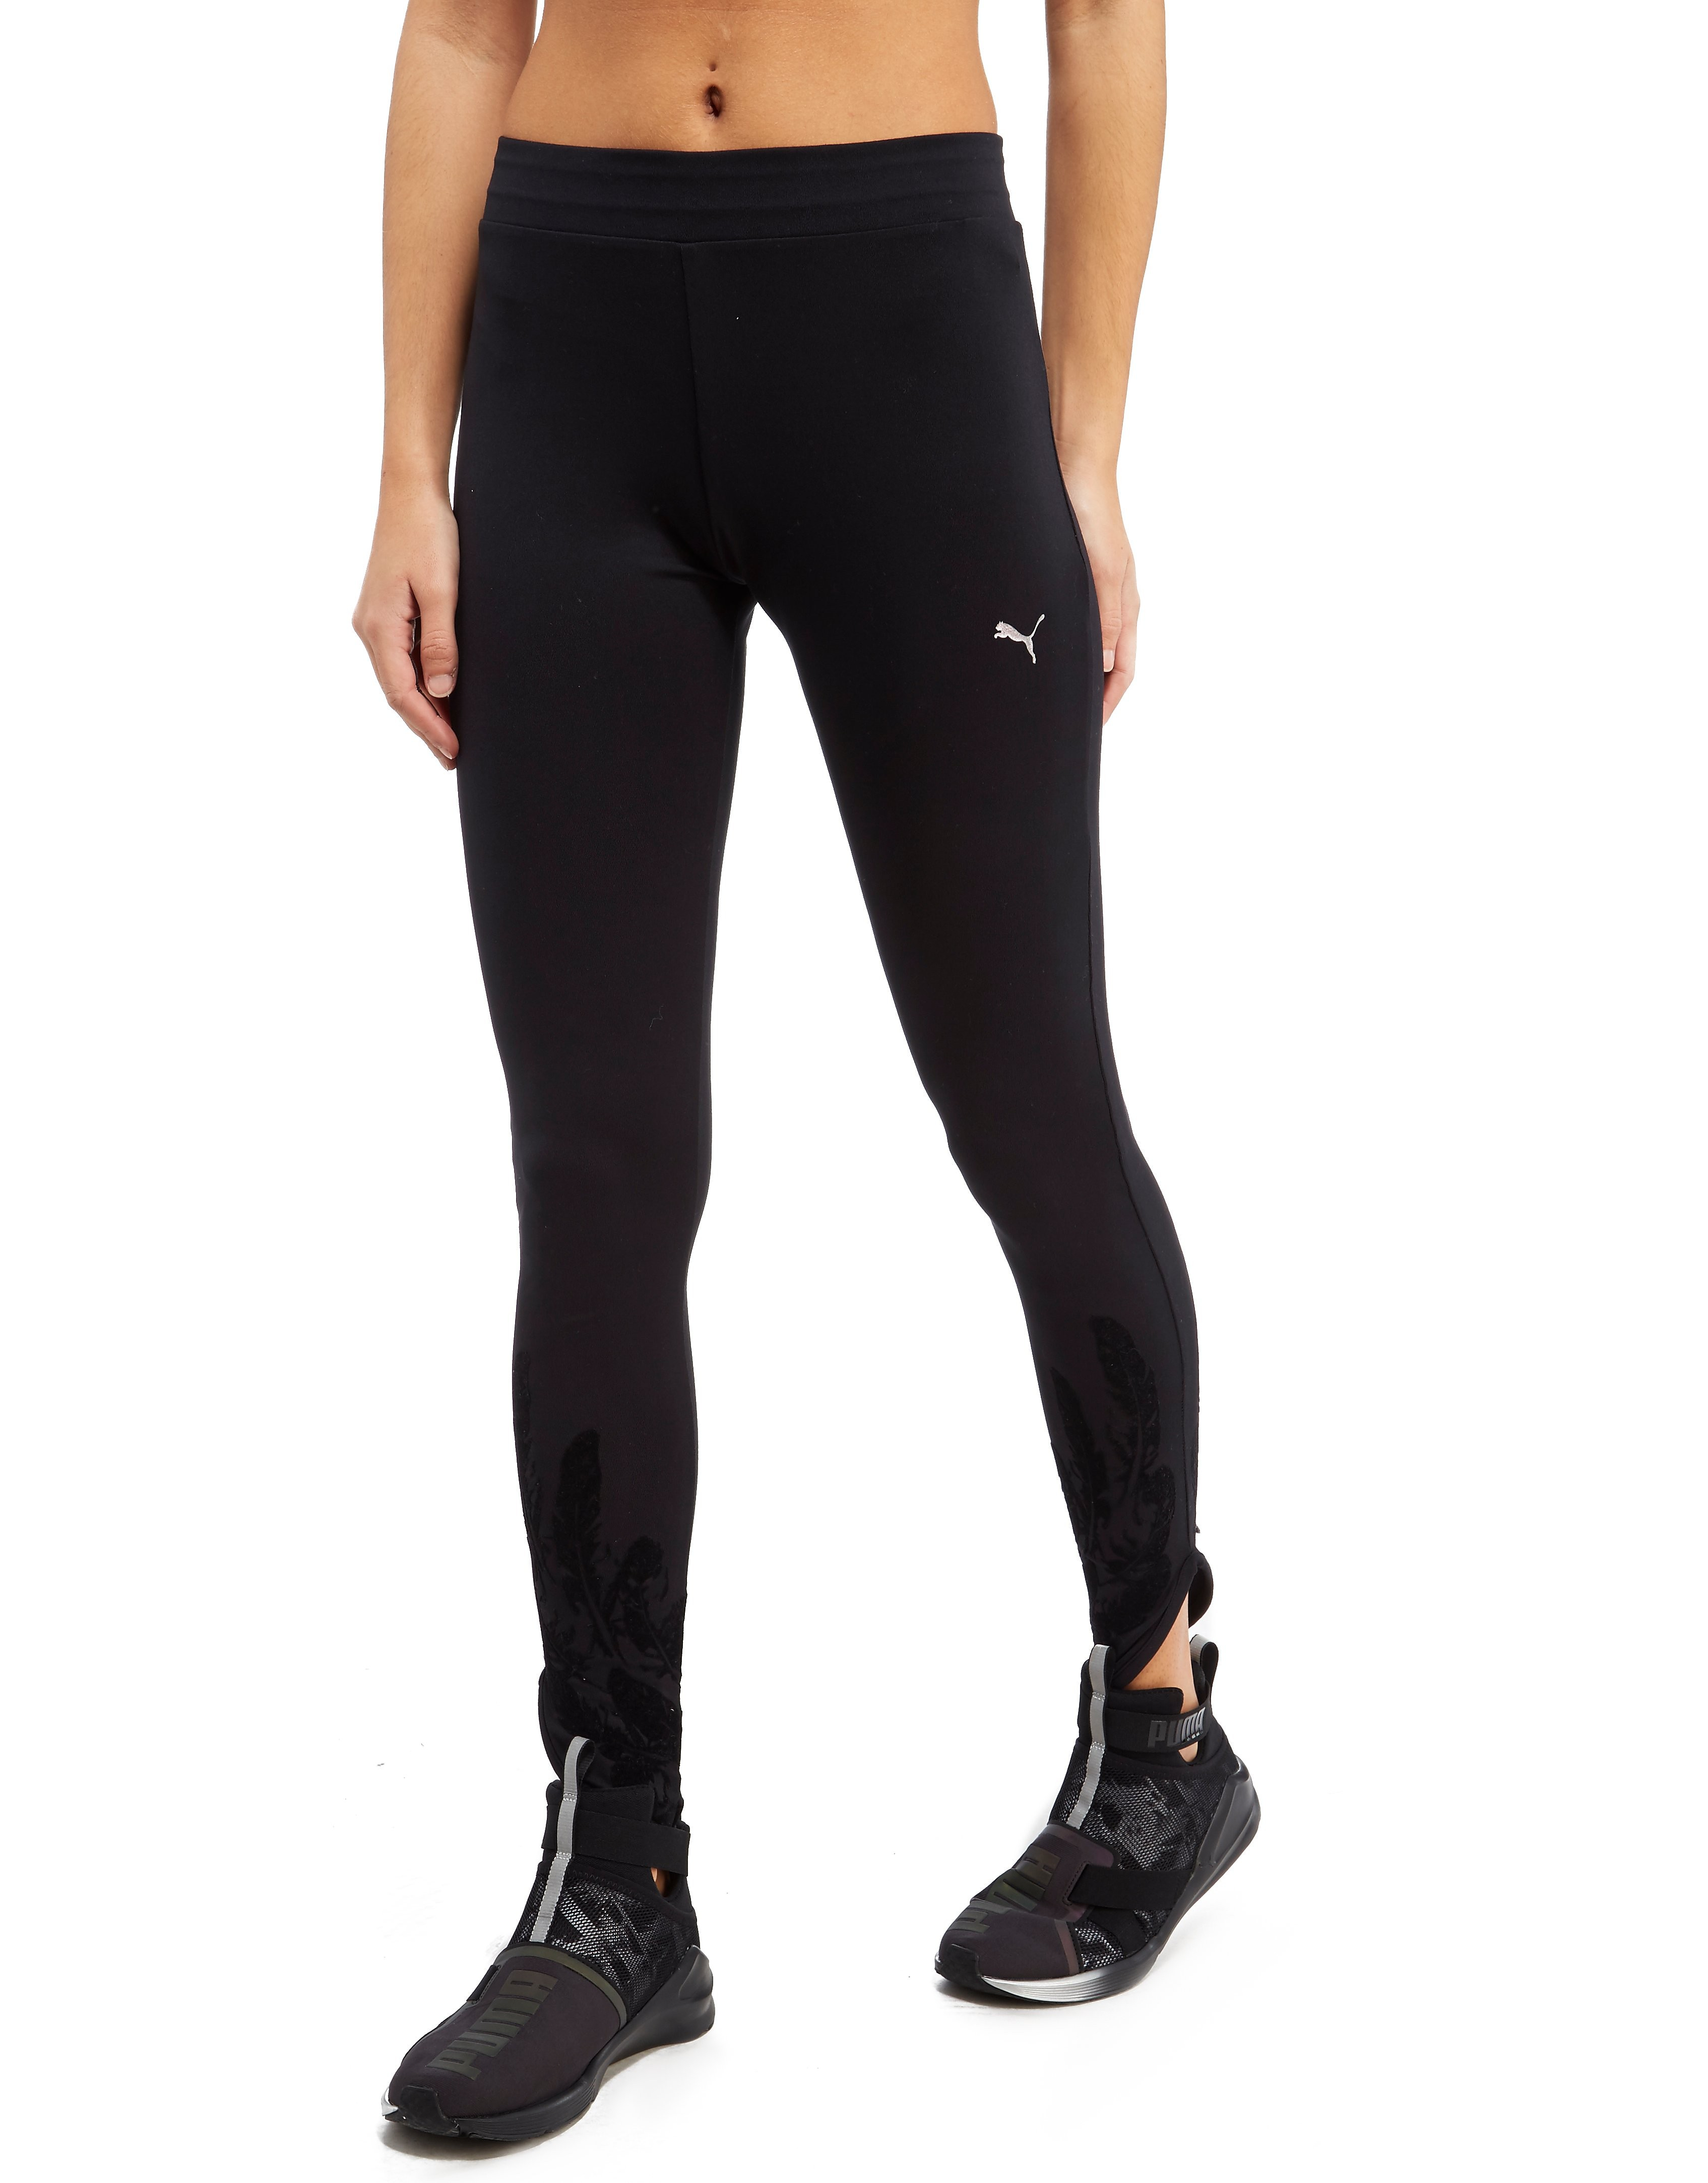 PUMA Black Swan Leggings